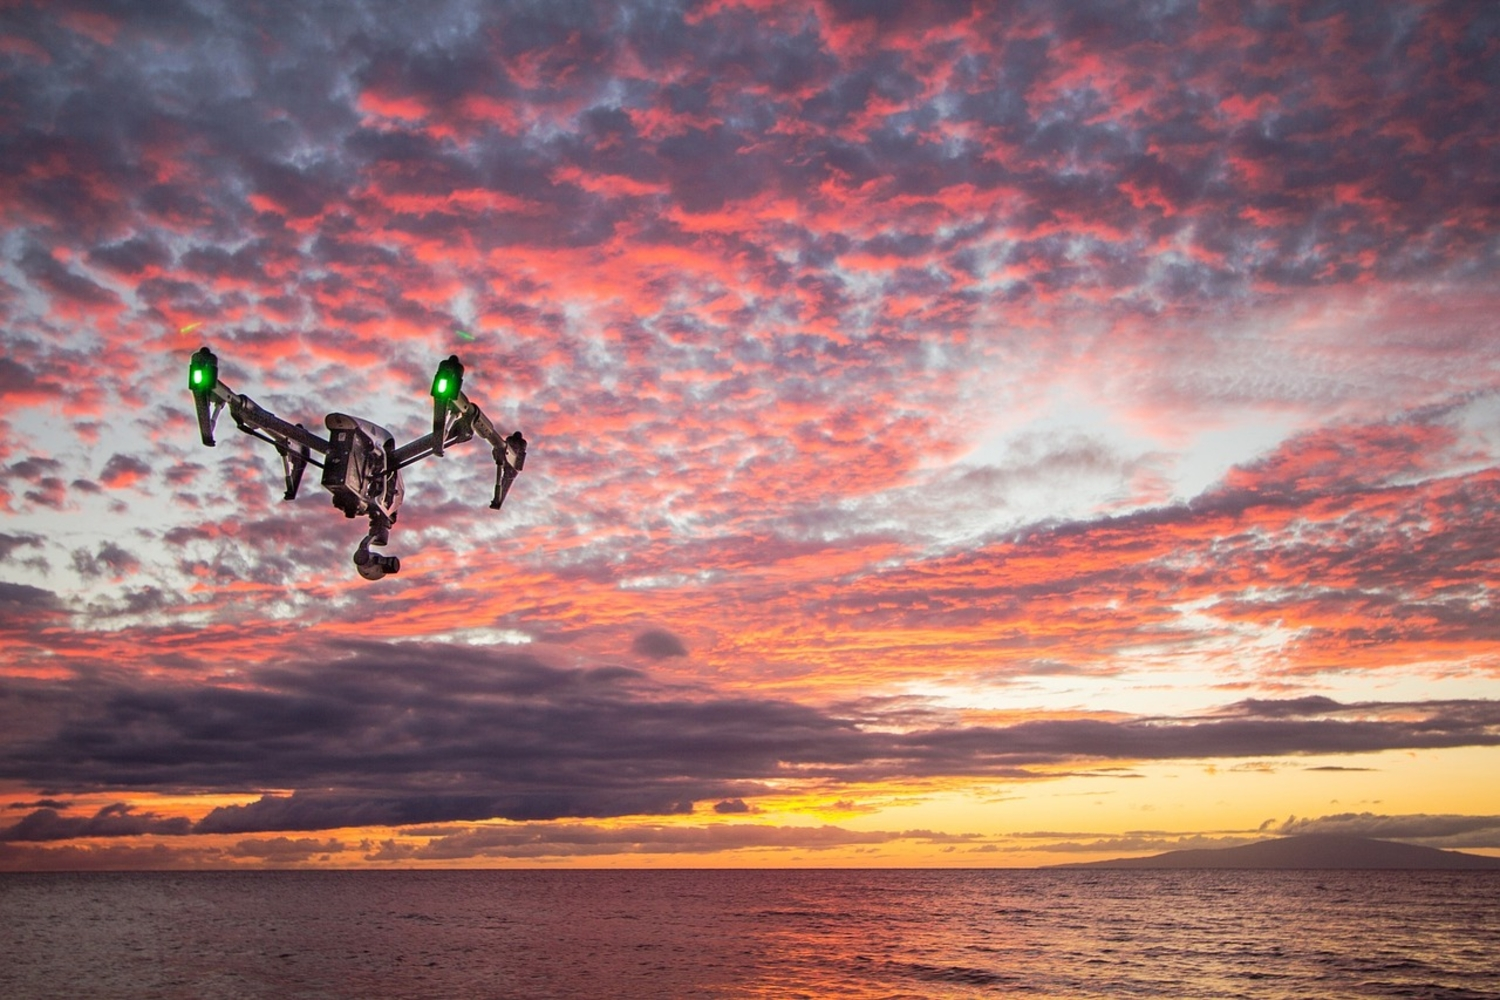 A Film Fest For Drones!